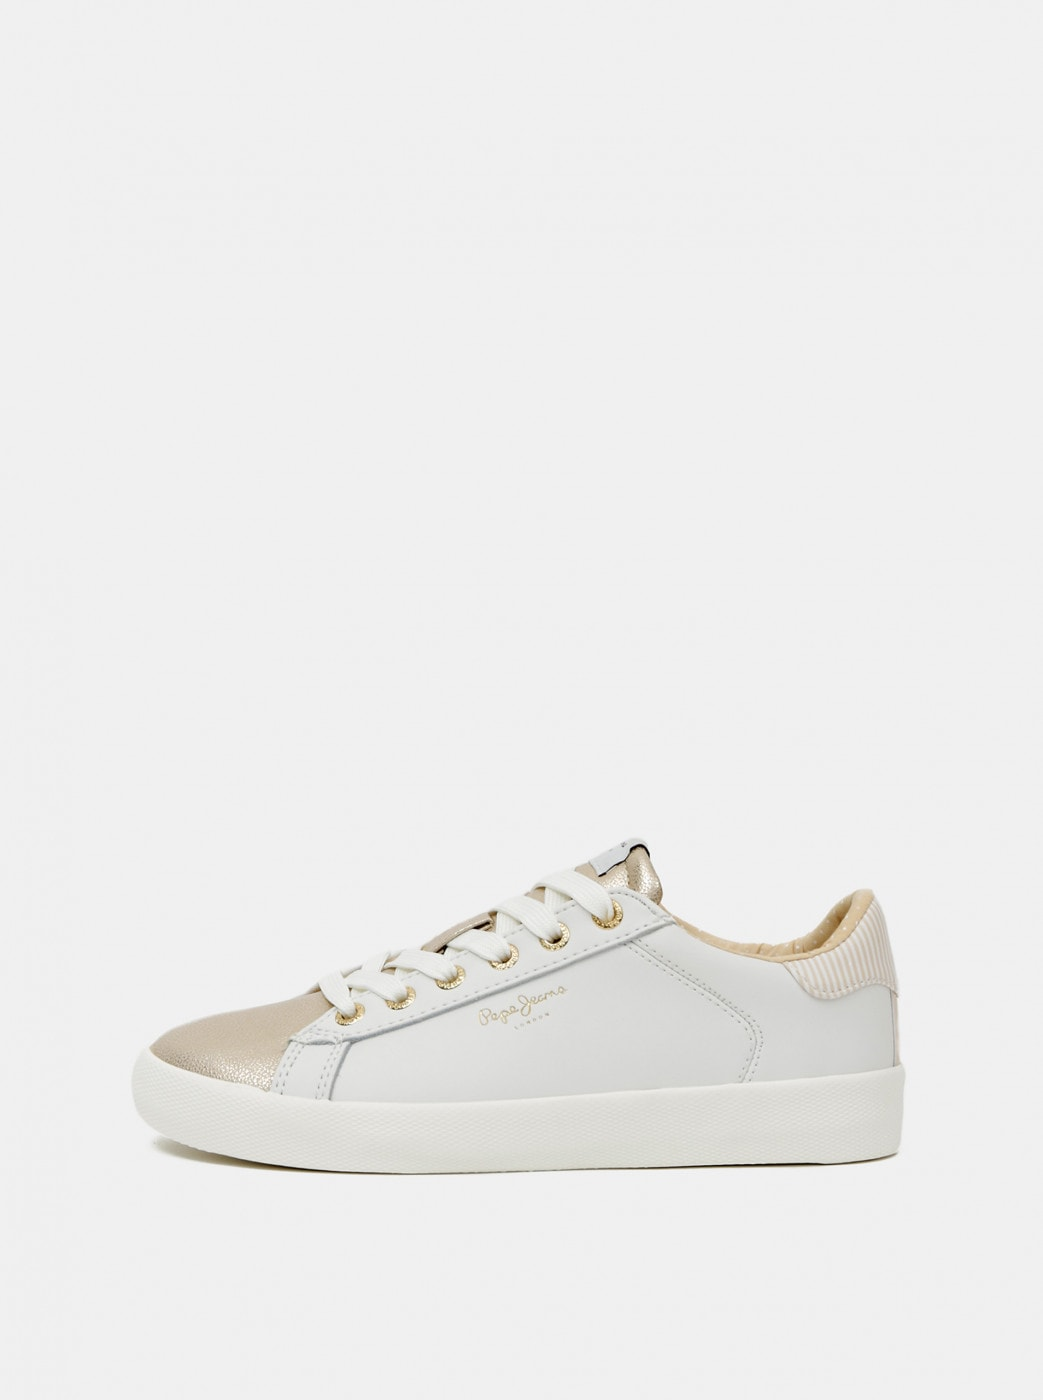 Pepe Jeans Cream Women's Leather Sneakers